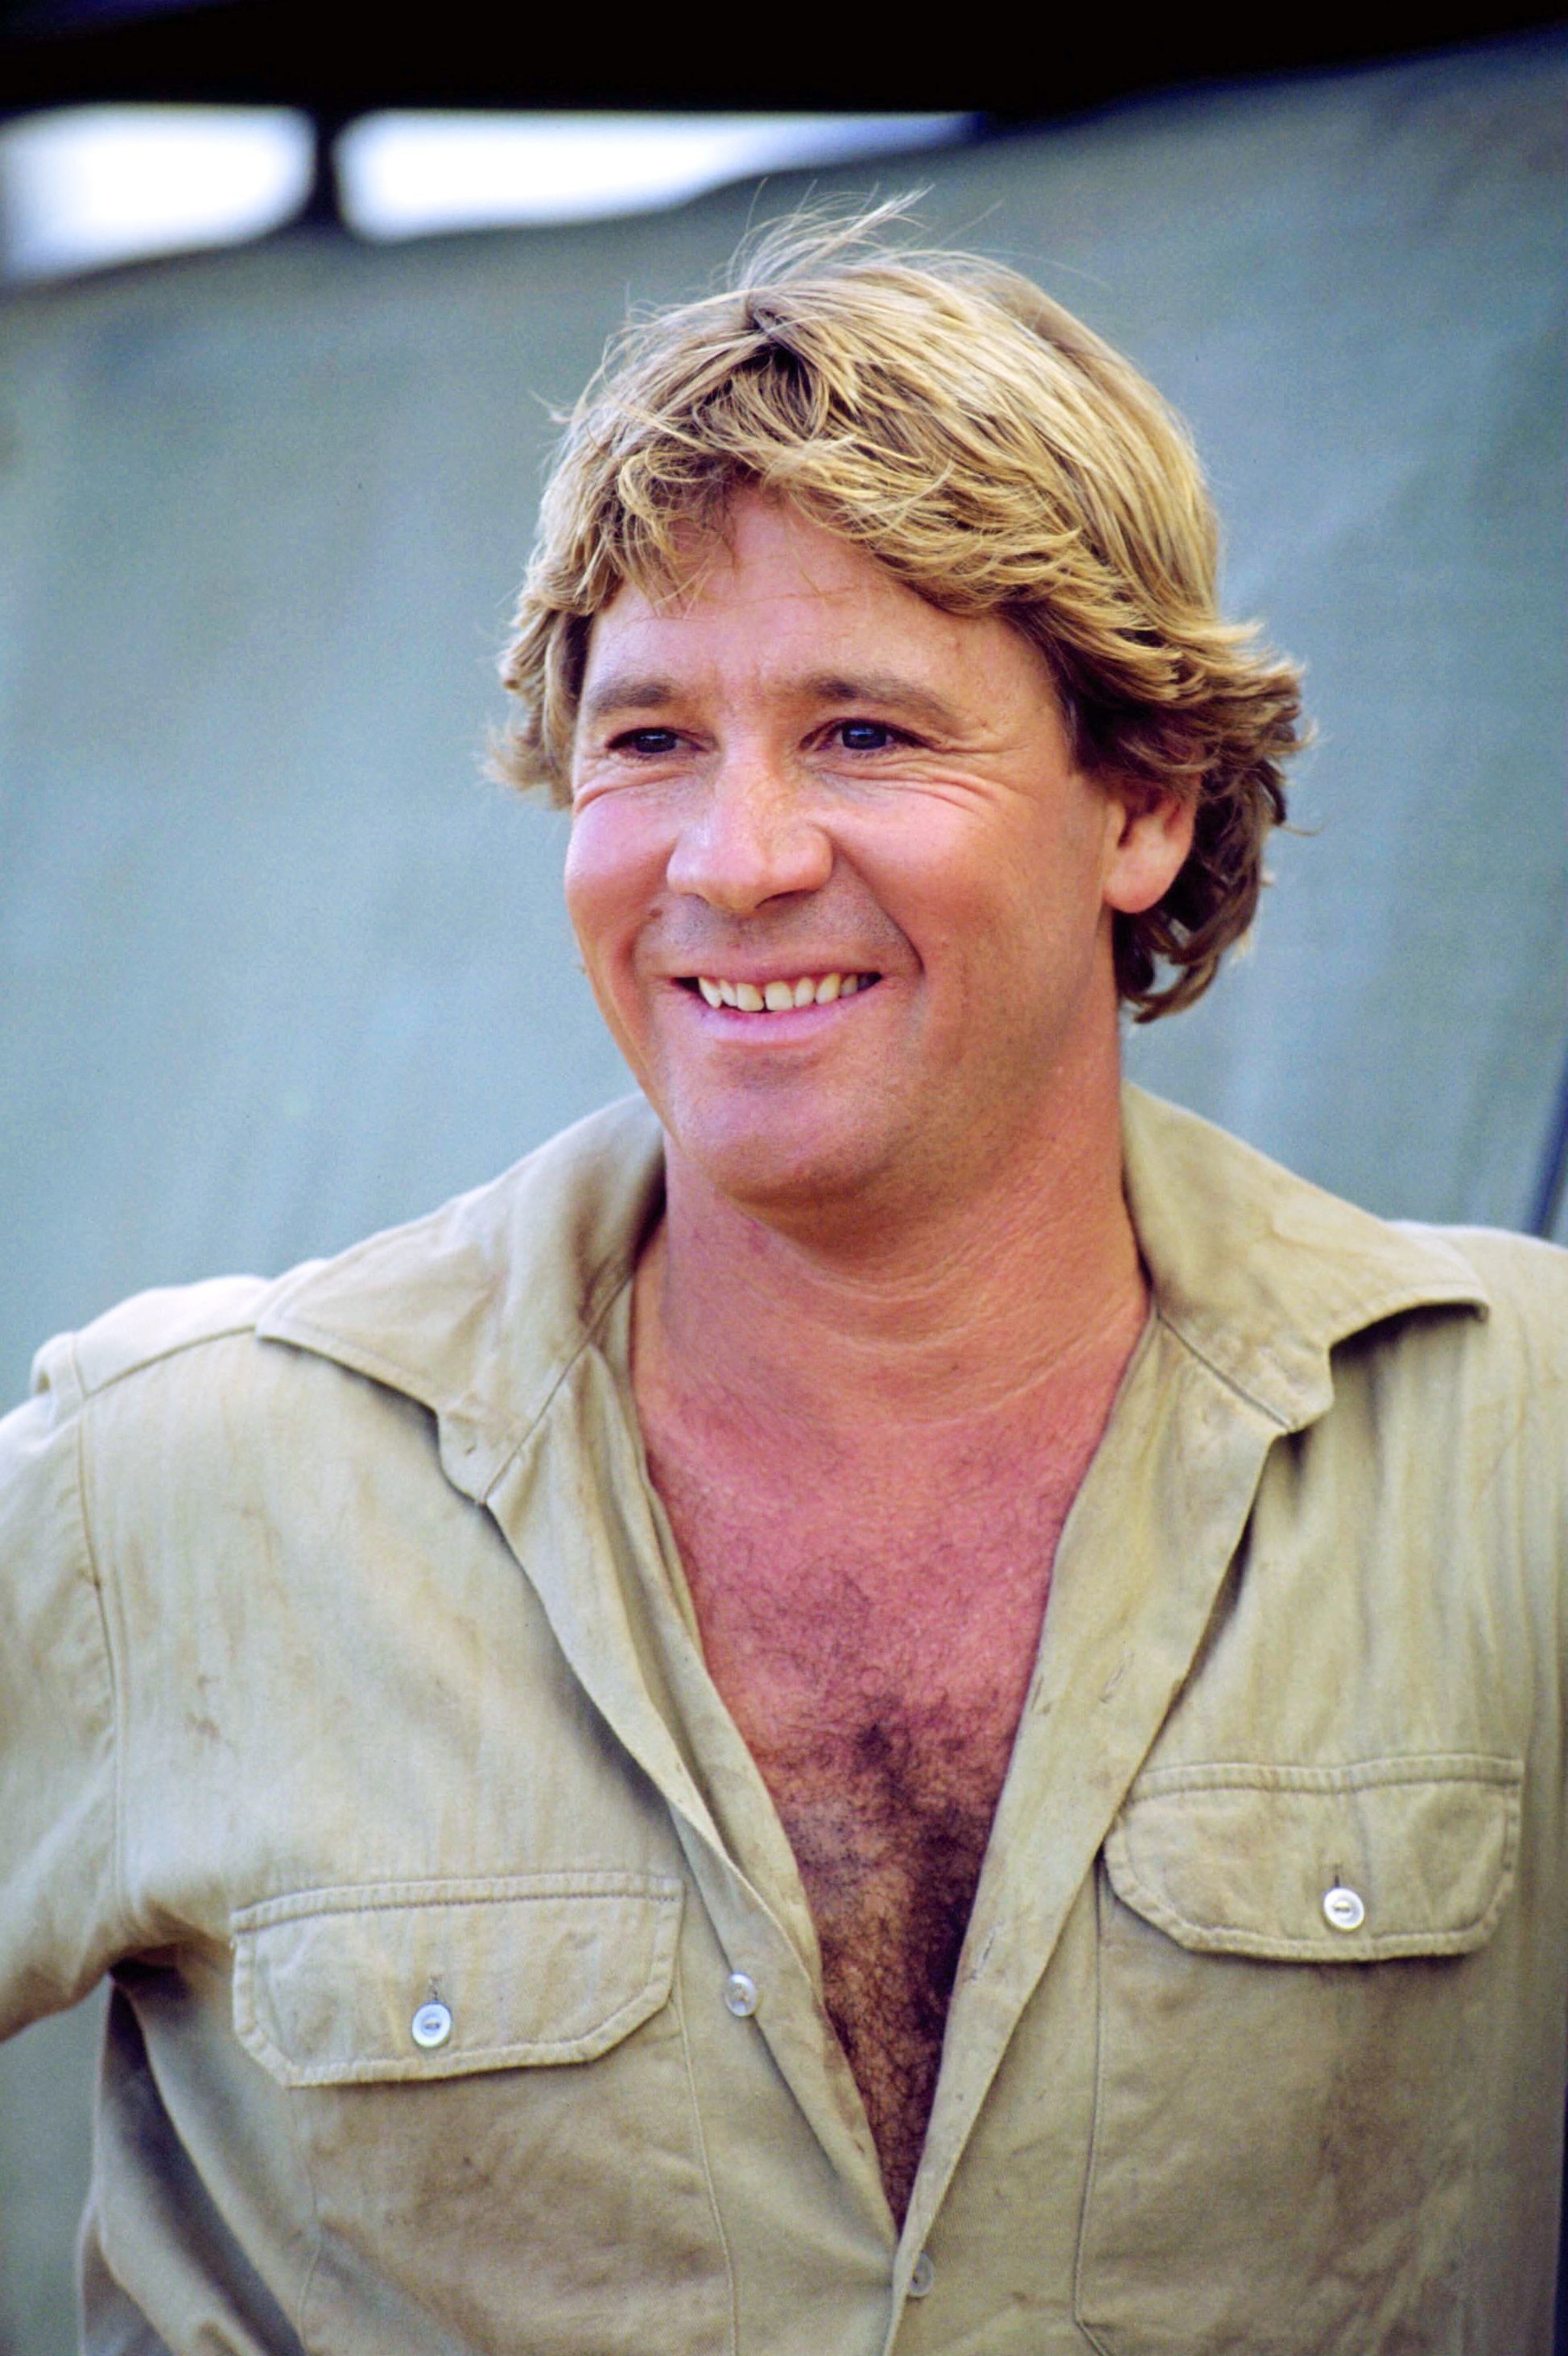 BACKLASH: PETA Criticised Over 'Disrespectful' Steve Irwin